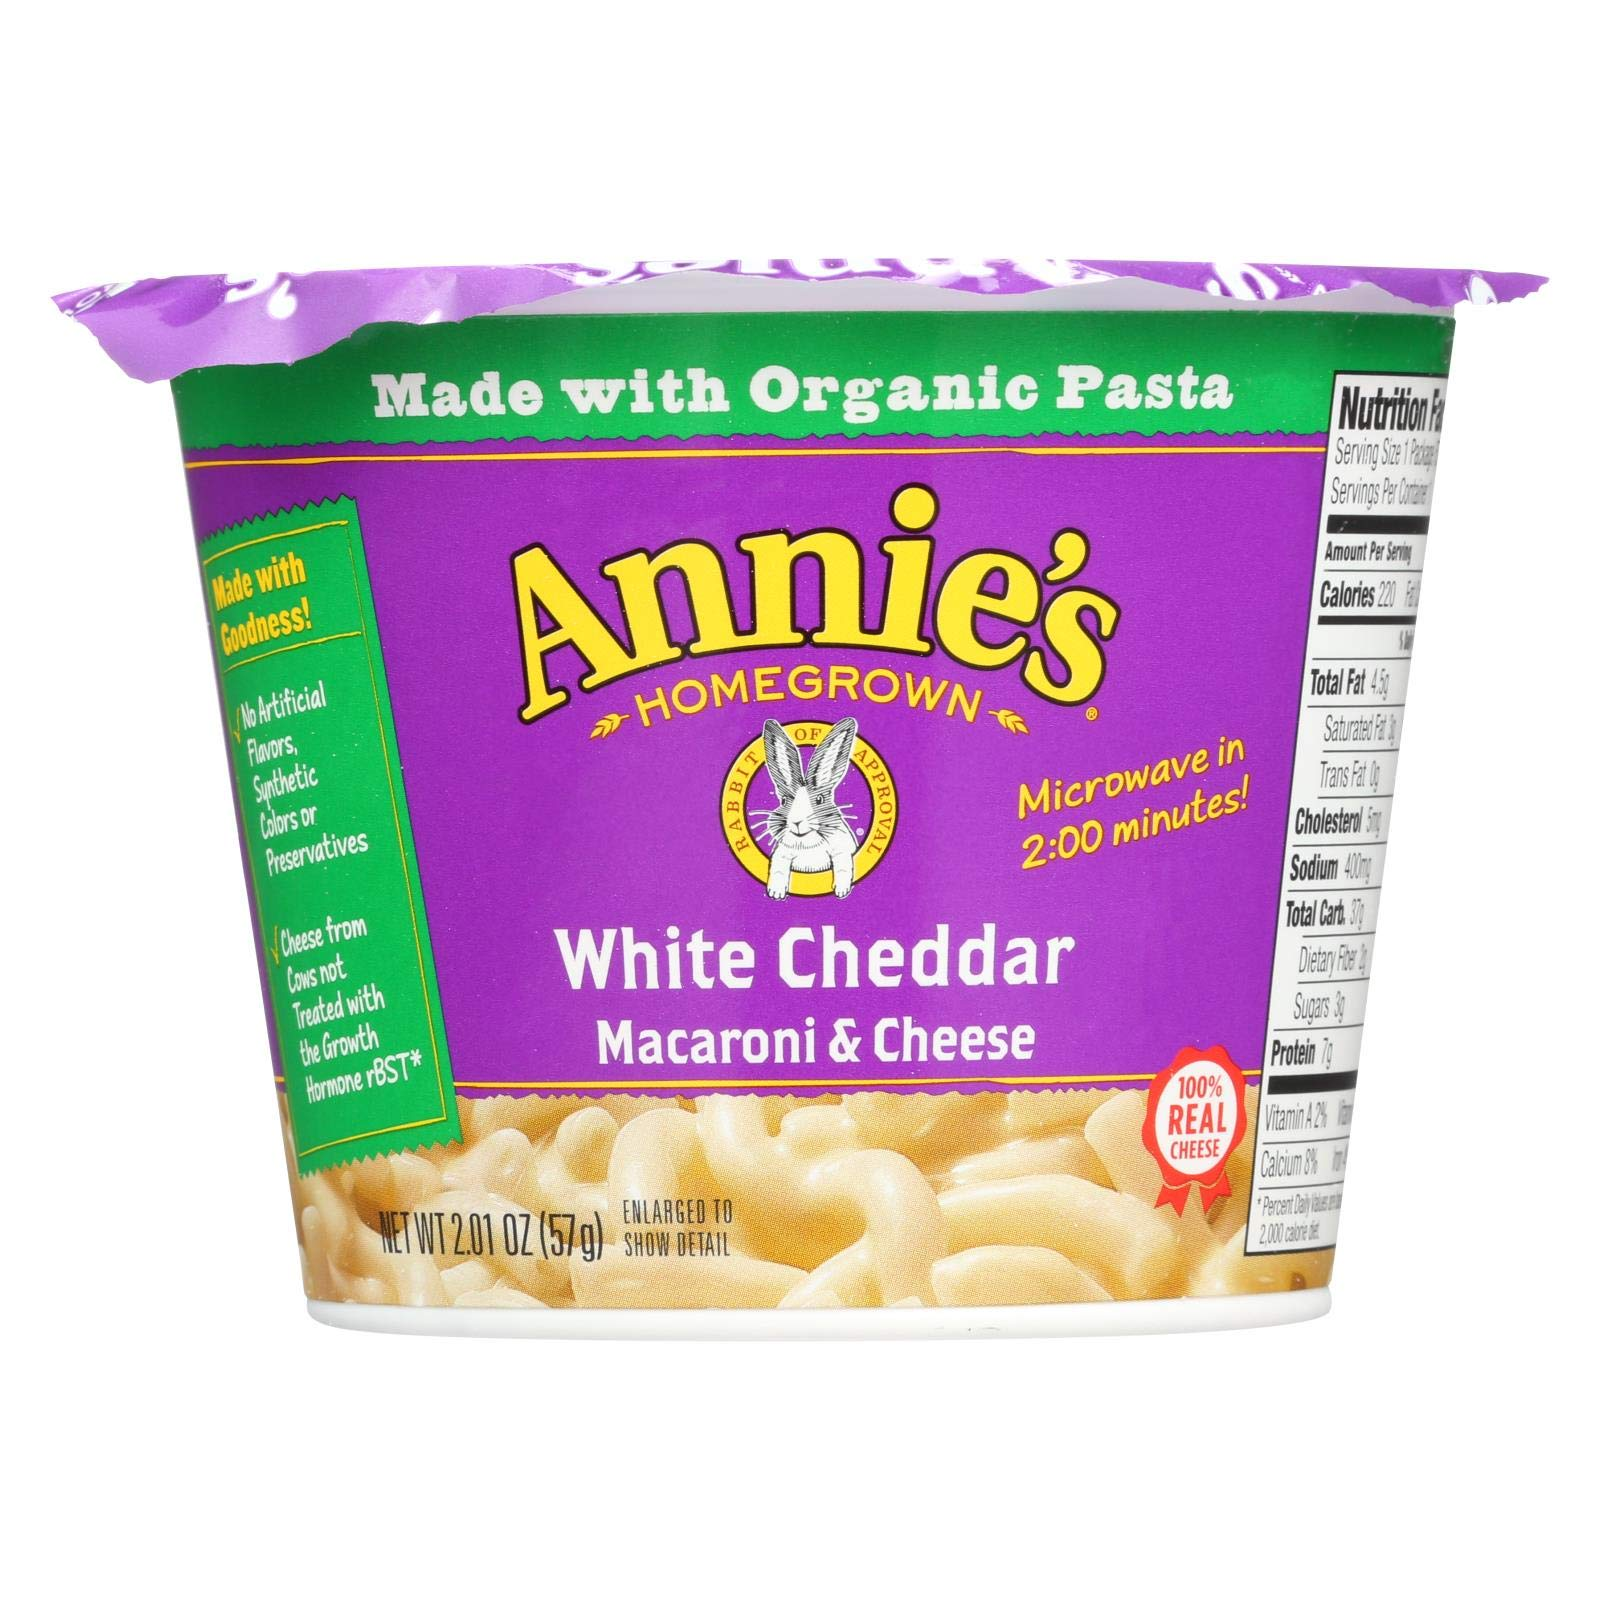 Annie's Homegrown White Cheddar Microwavable Macaroni and Cheese Cup - Case of 12 - 2.01 oz. by Annie's Homegrown